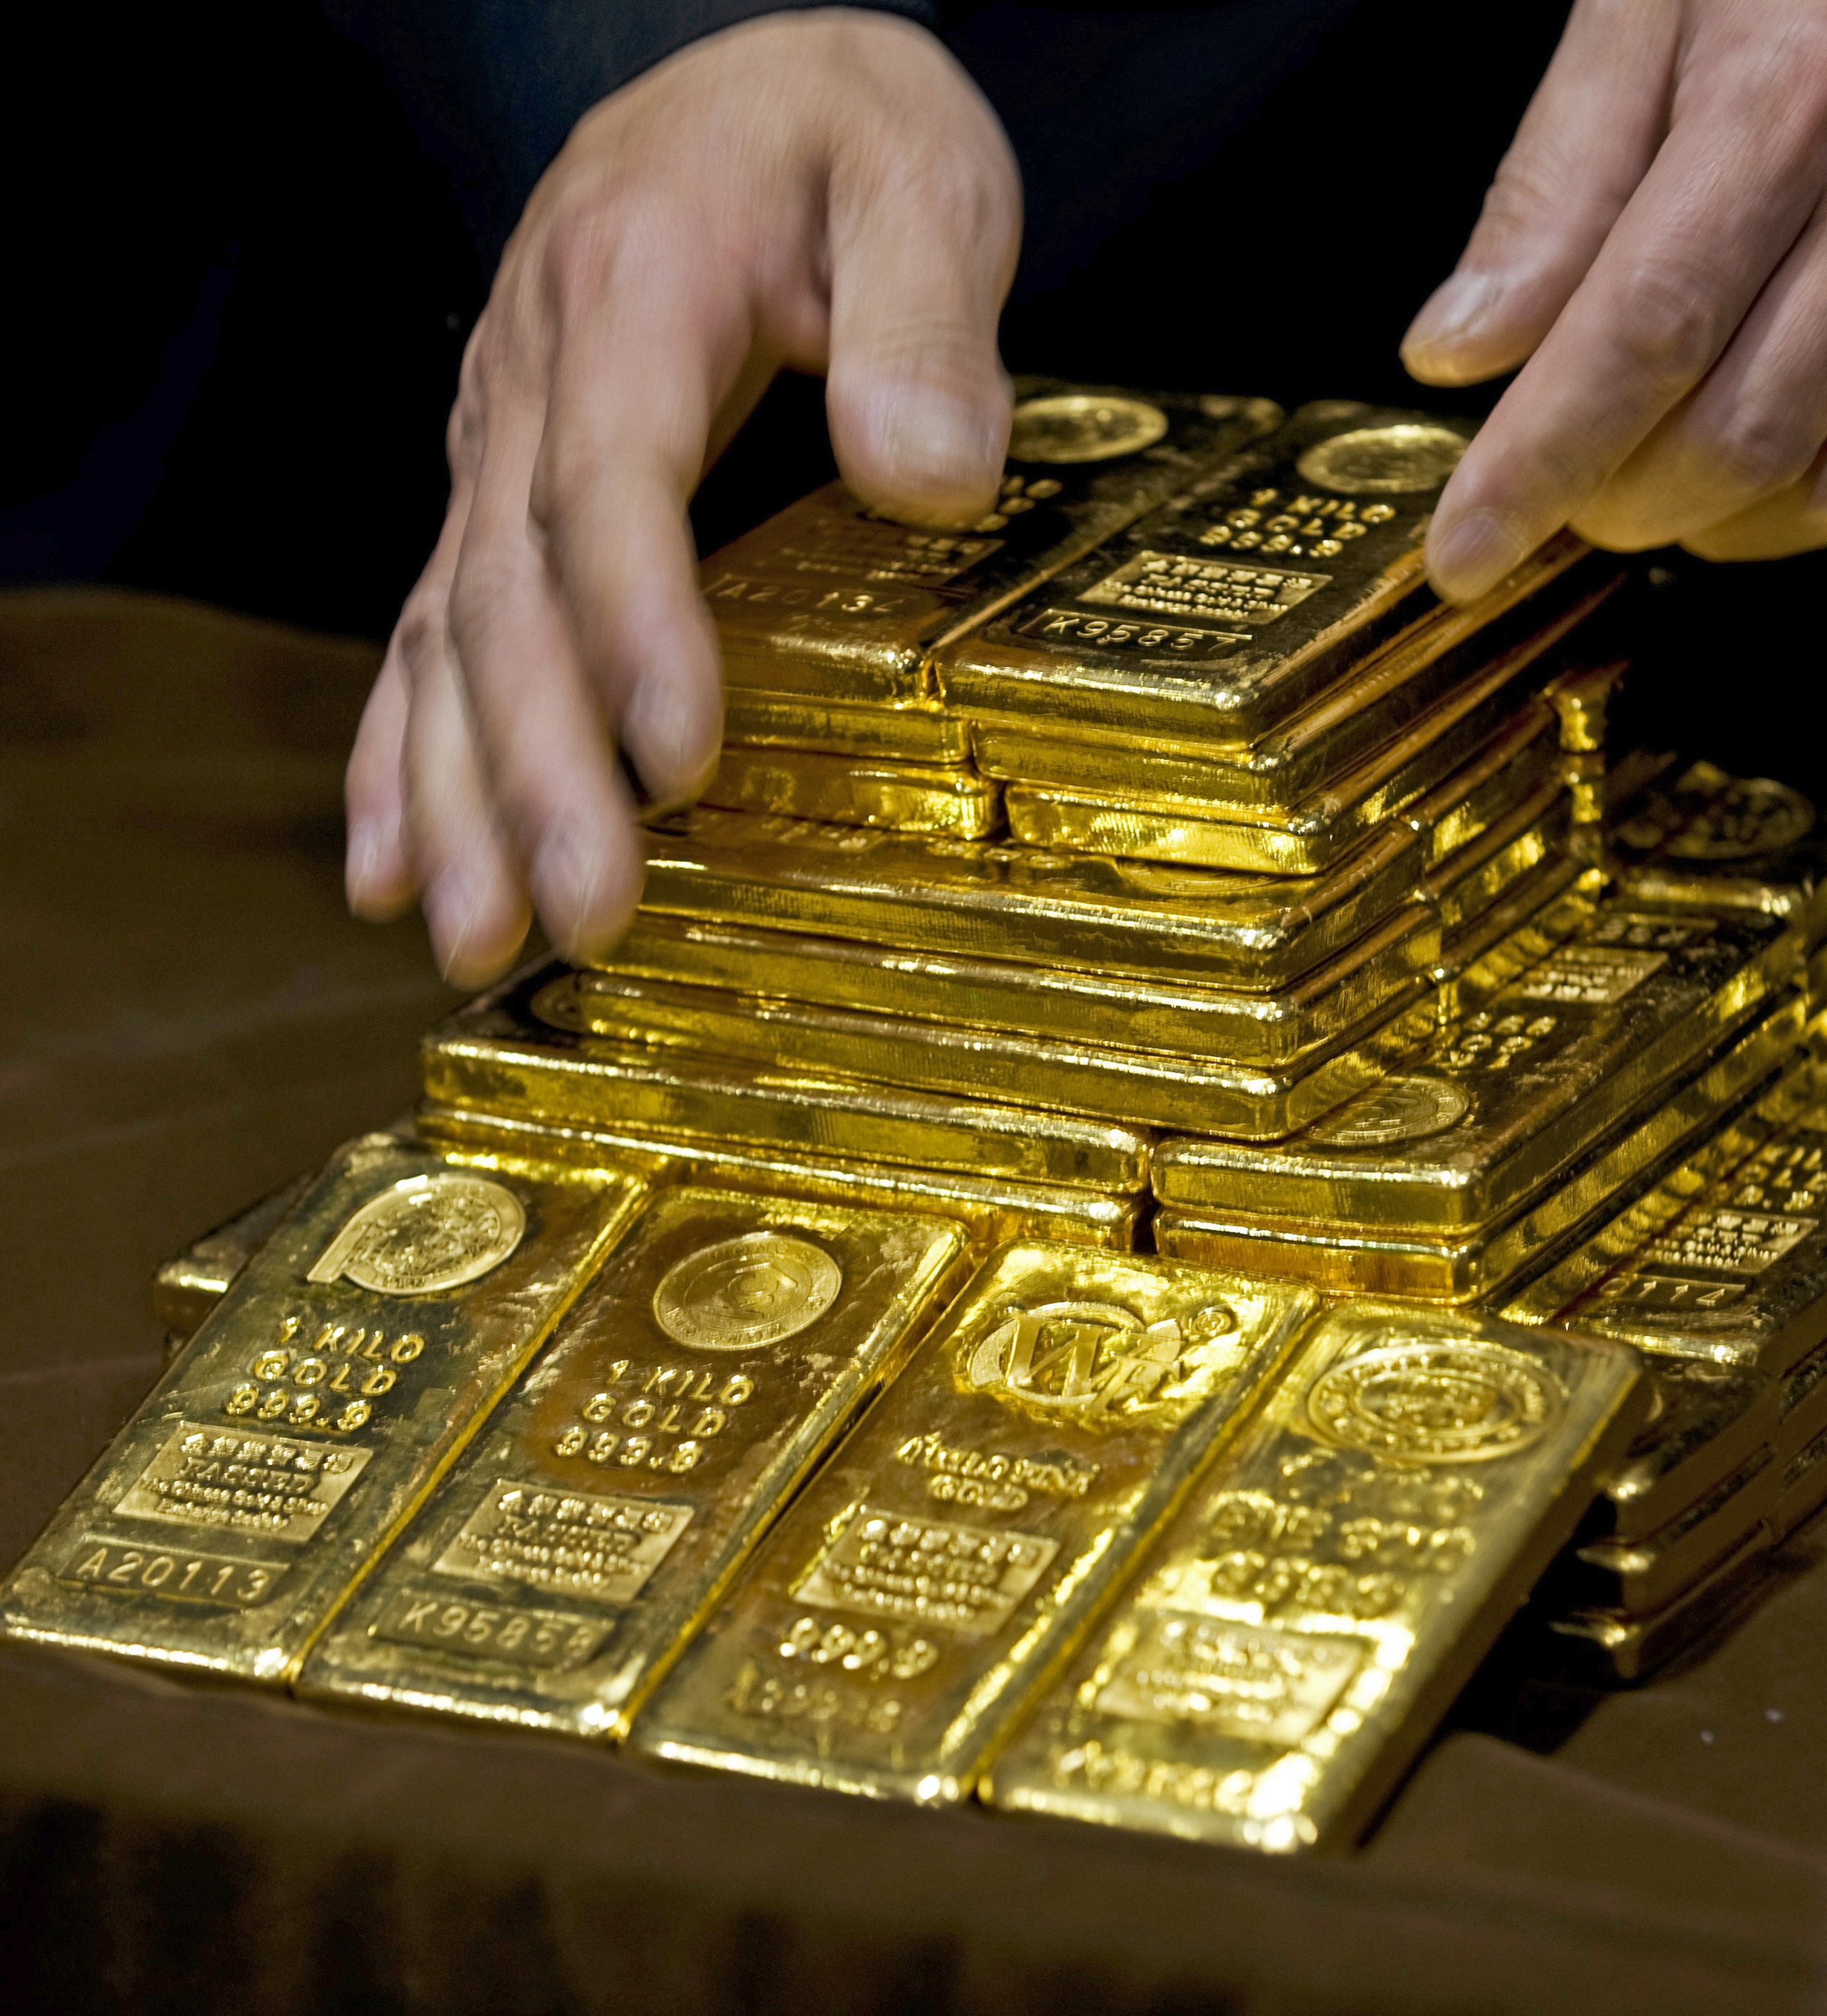 Gold traders have complained for years that a select few banks have colluded in setting the price of gold.